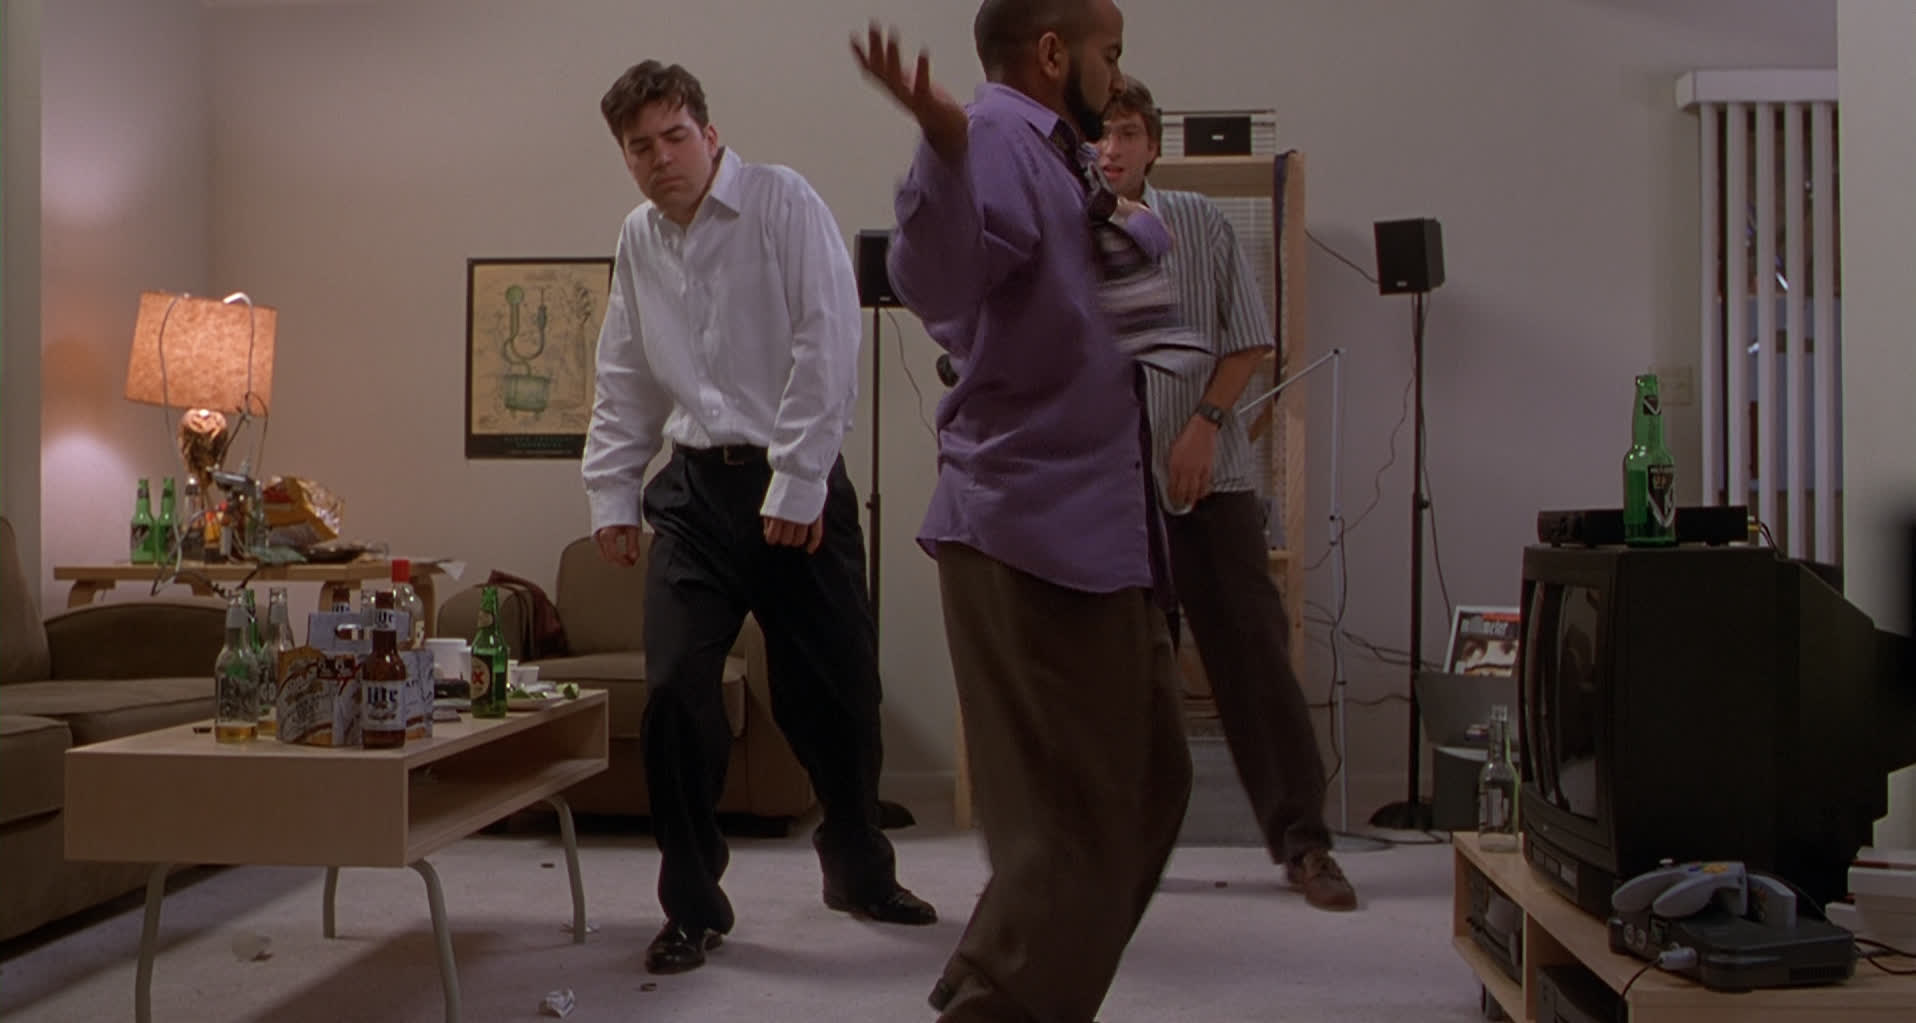 Image of the three programmers from Office Space dancing, with a Nintendo 64 on the right side of the frame